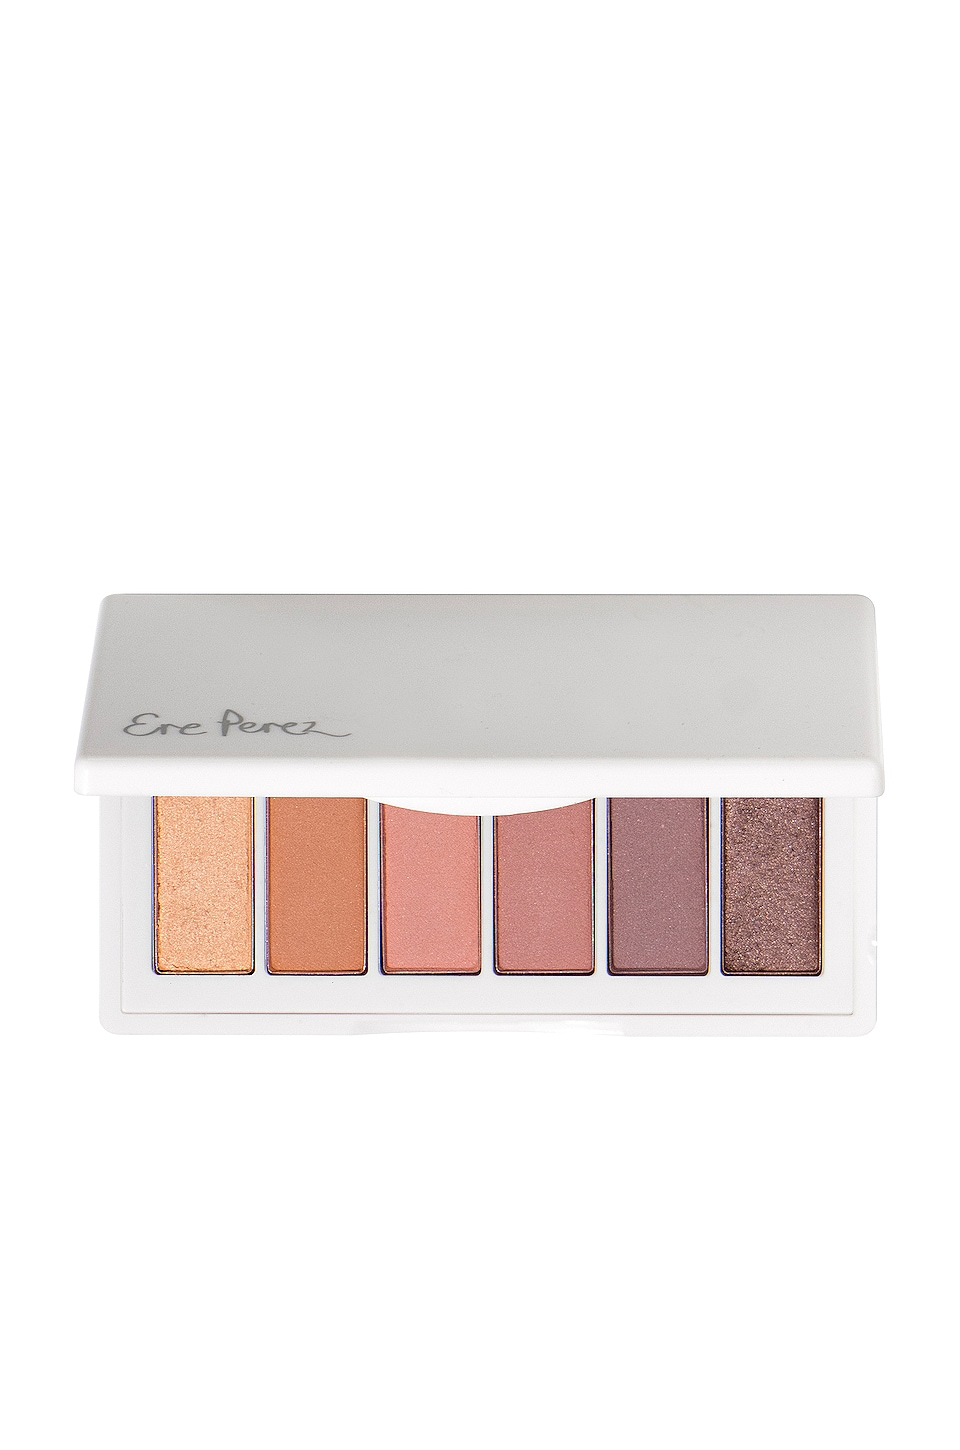 Ere Perez Chamomile Eye Palette in Lovely